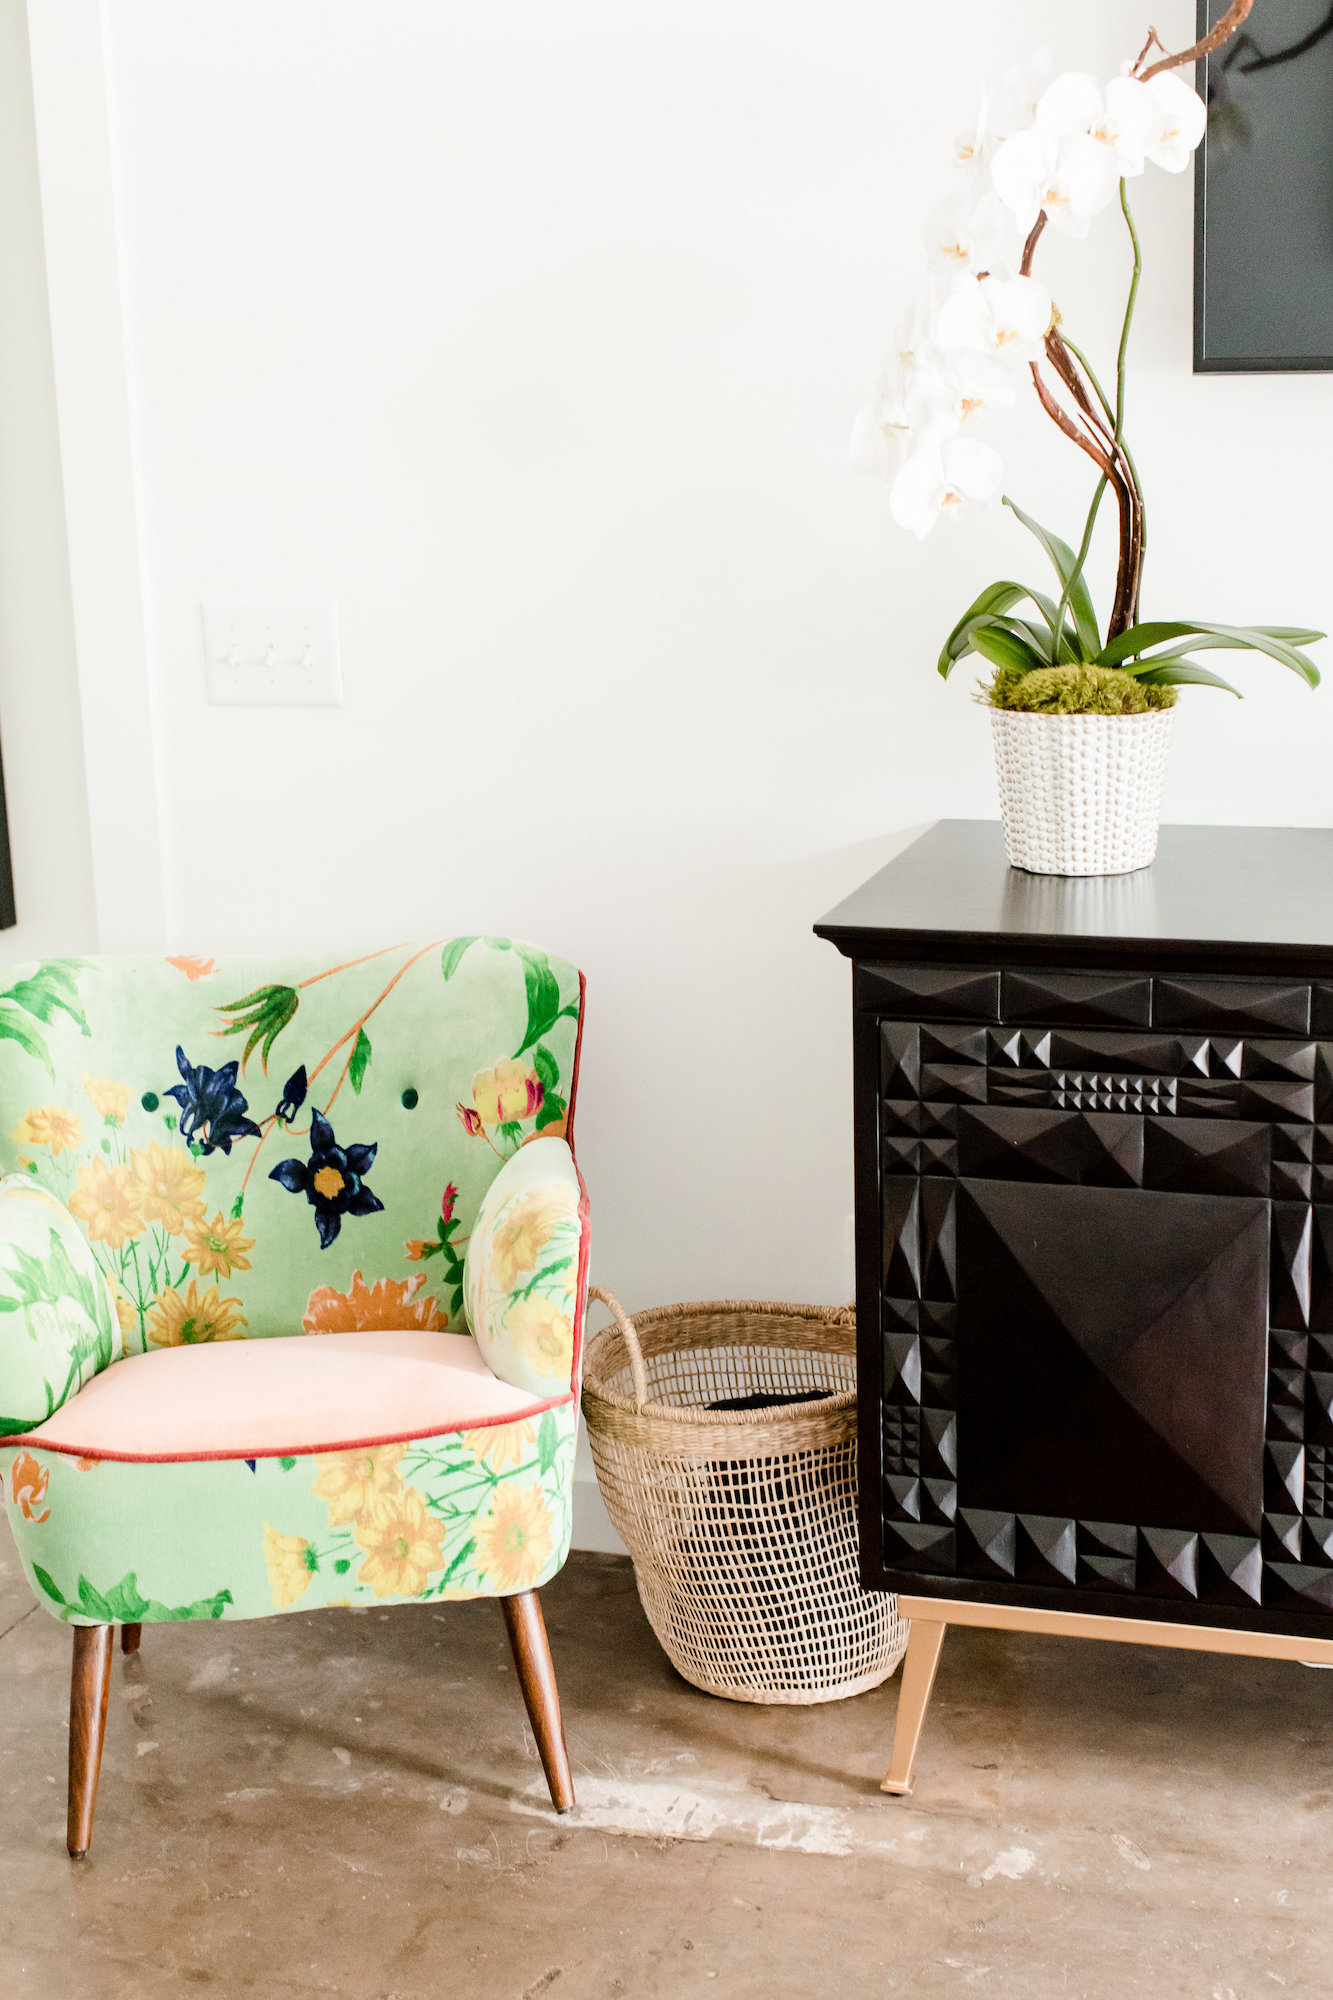 mid-century-modern-vacation-rental-green-chair-black-cabinet-plant-web-res.jpg